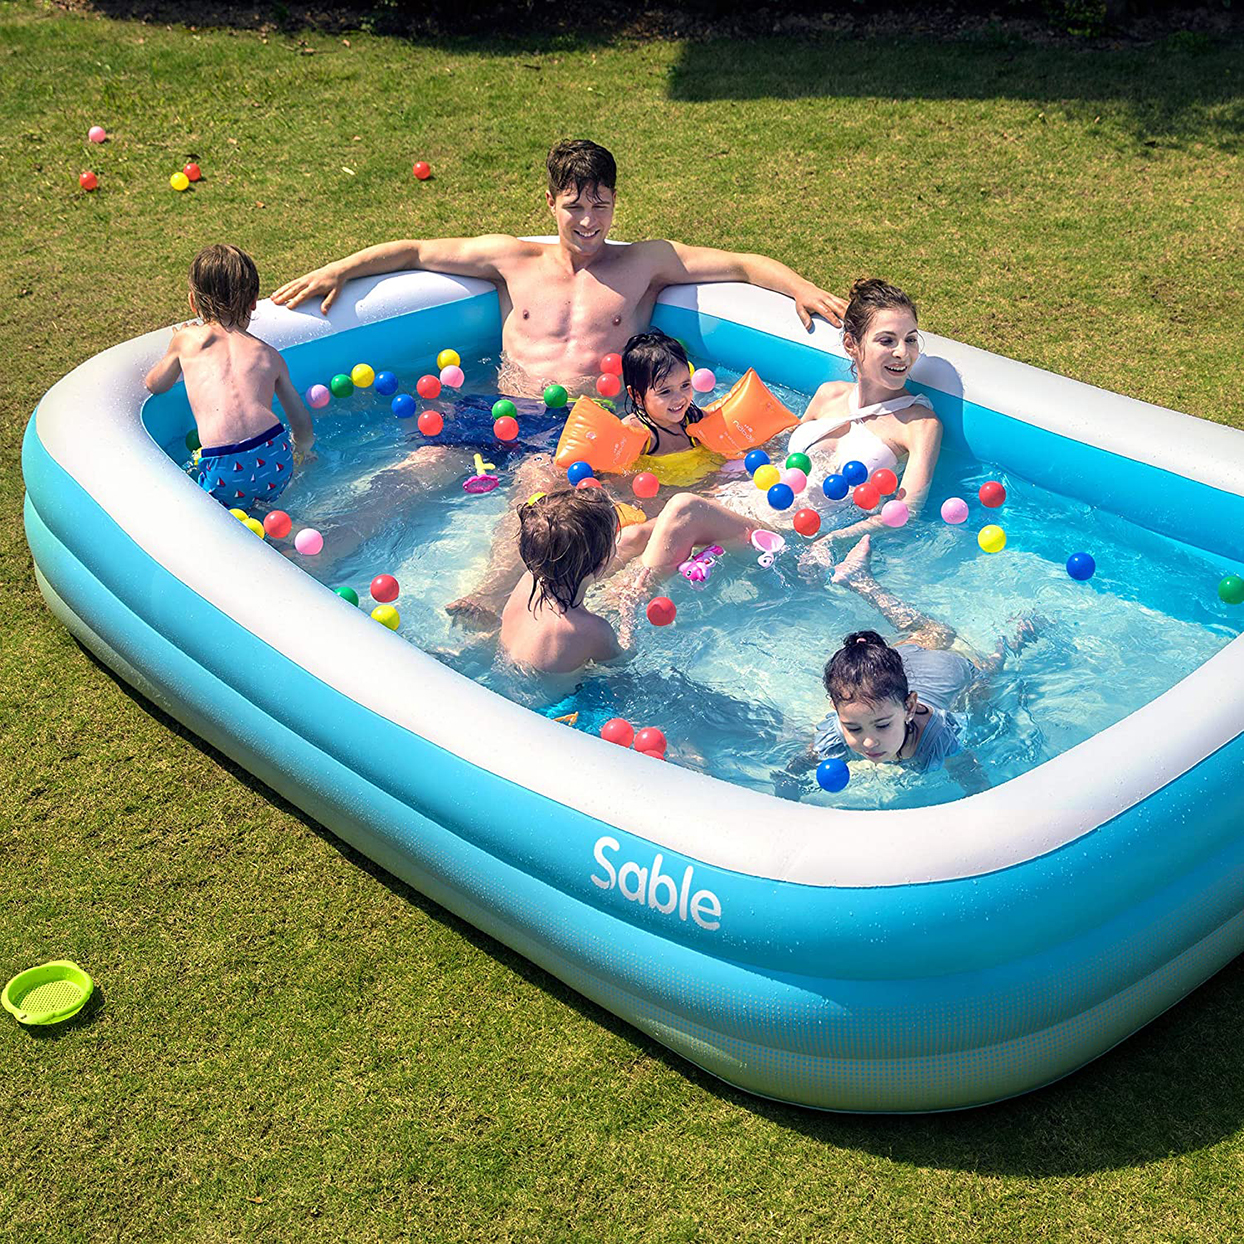 family swimming in blue inflatable tool with colorful balls and toys